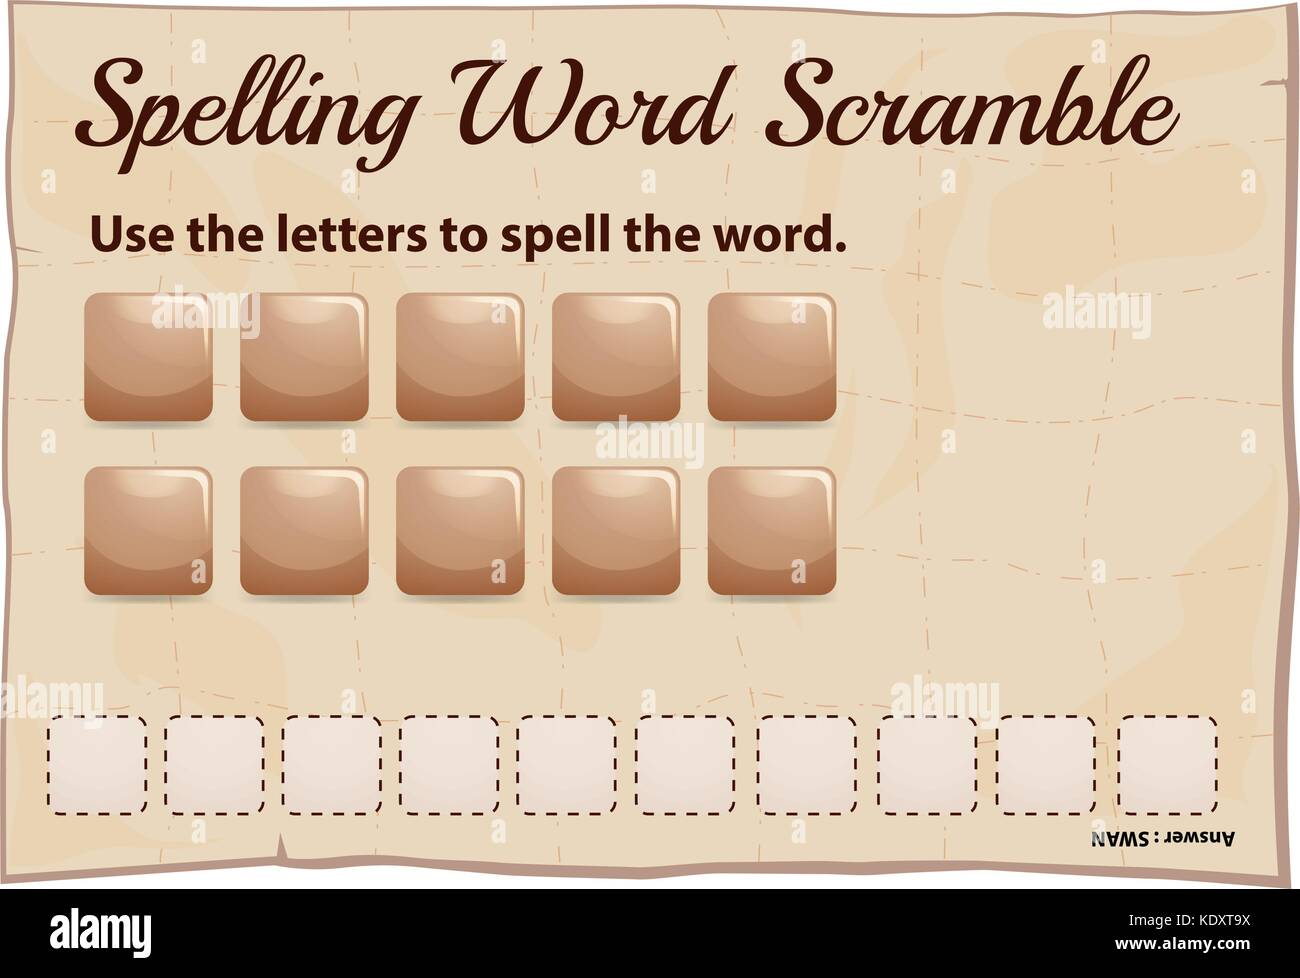 Spelling word scramble game template illustration - Stock Vector